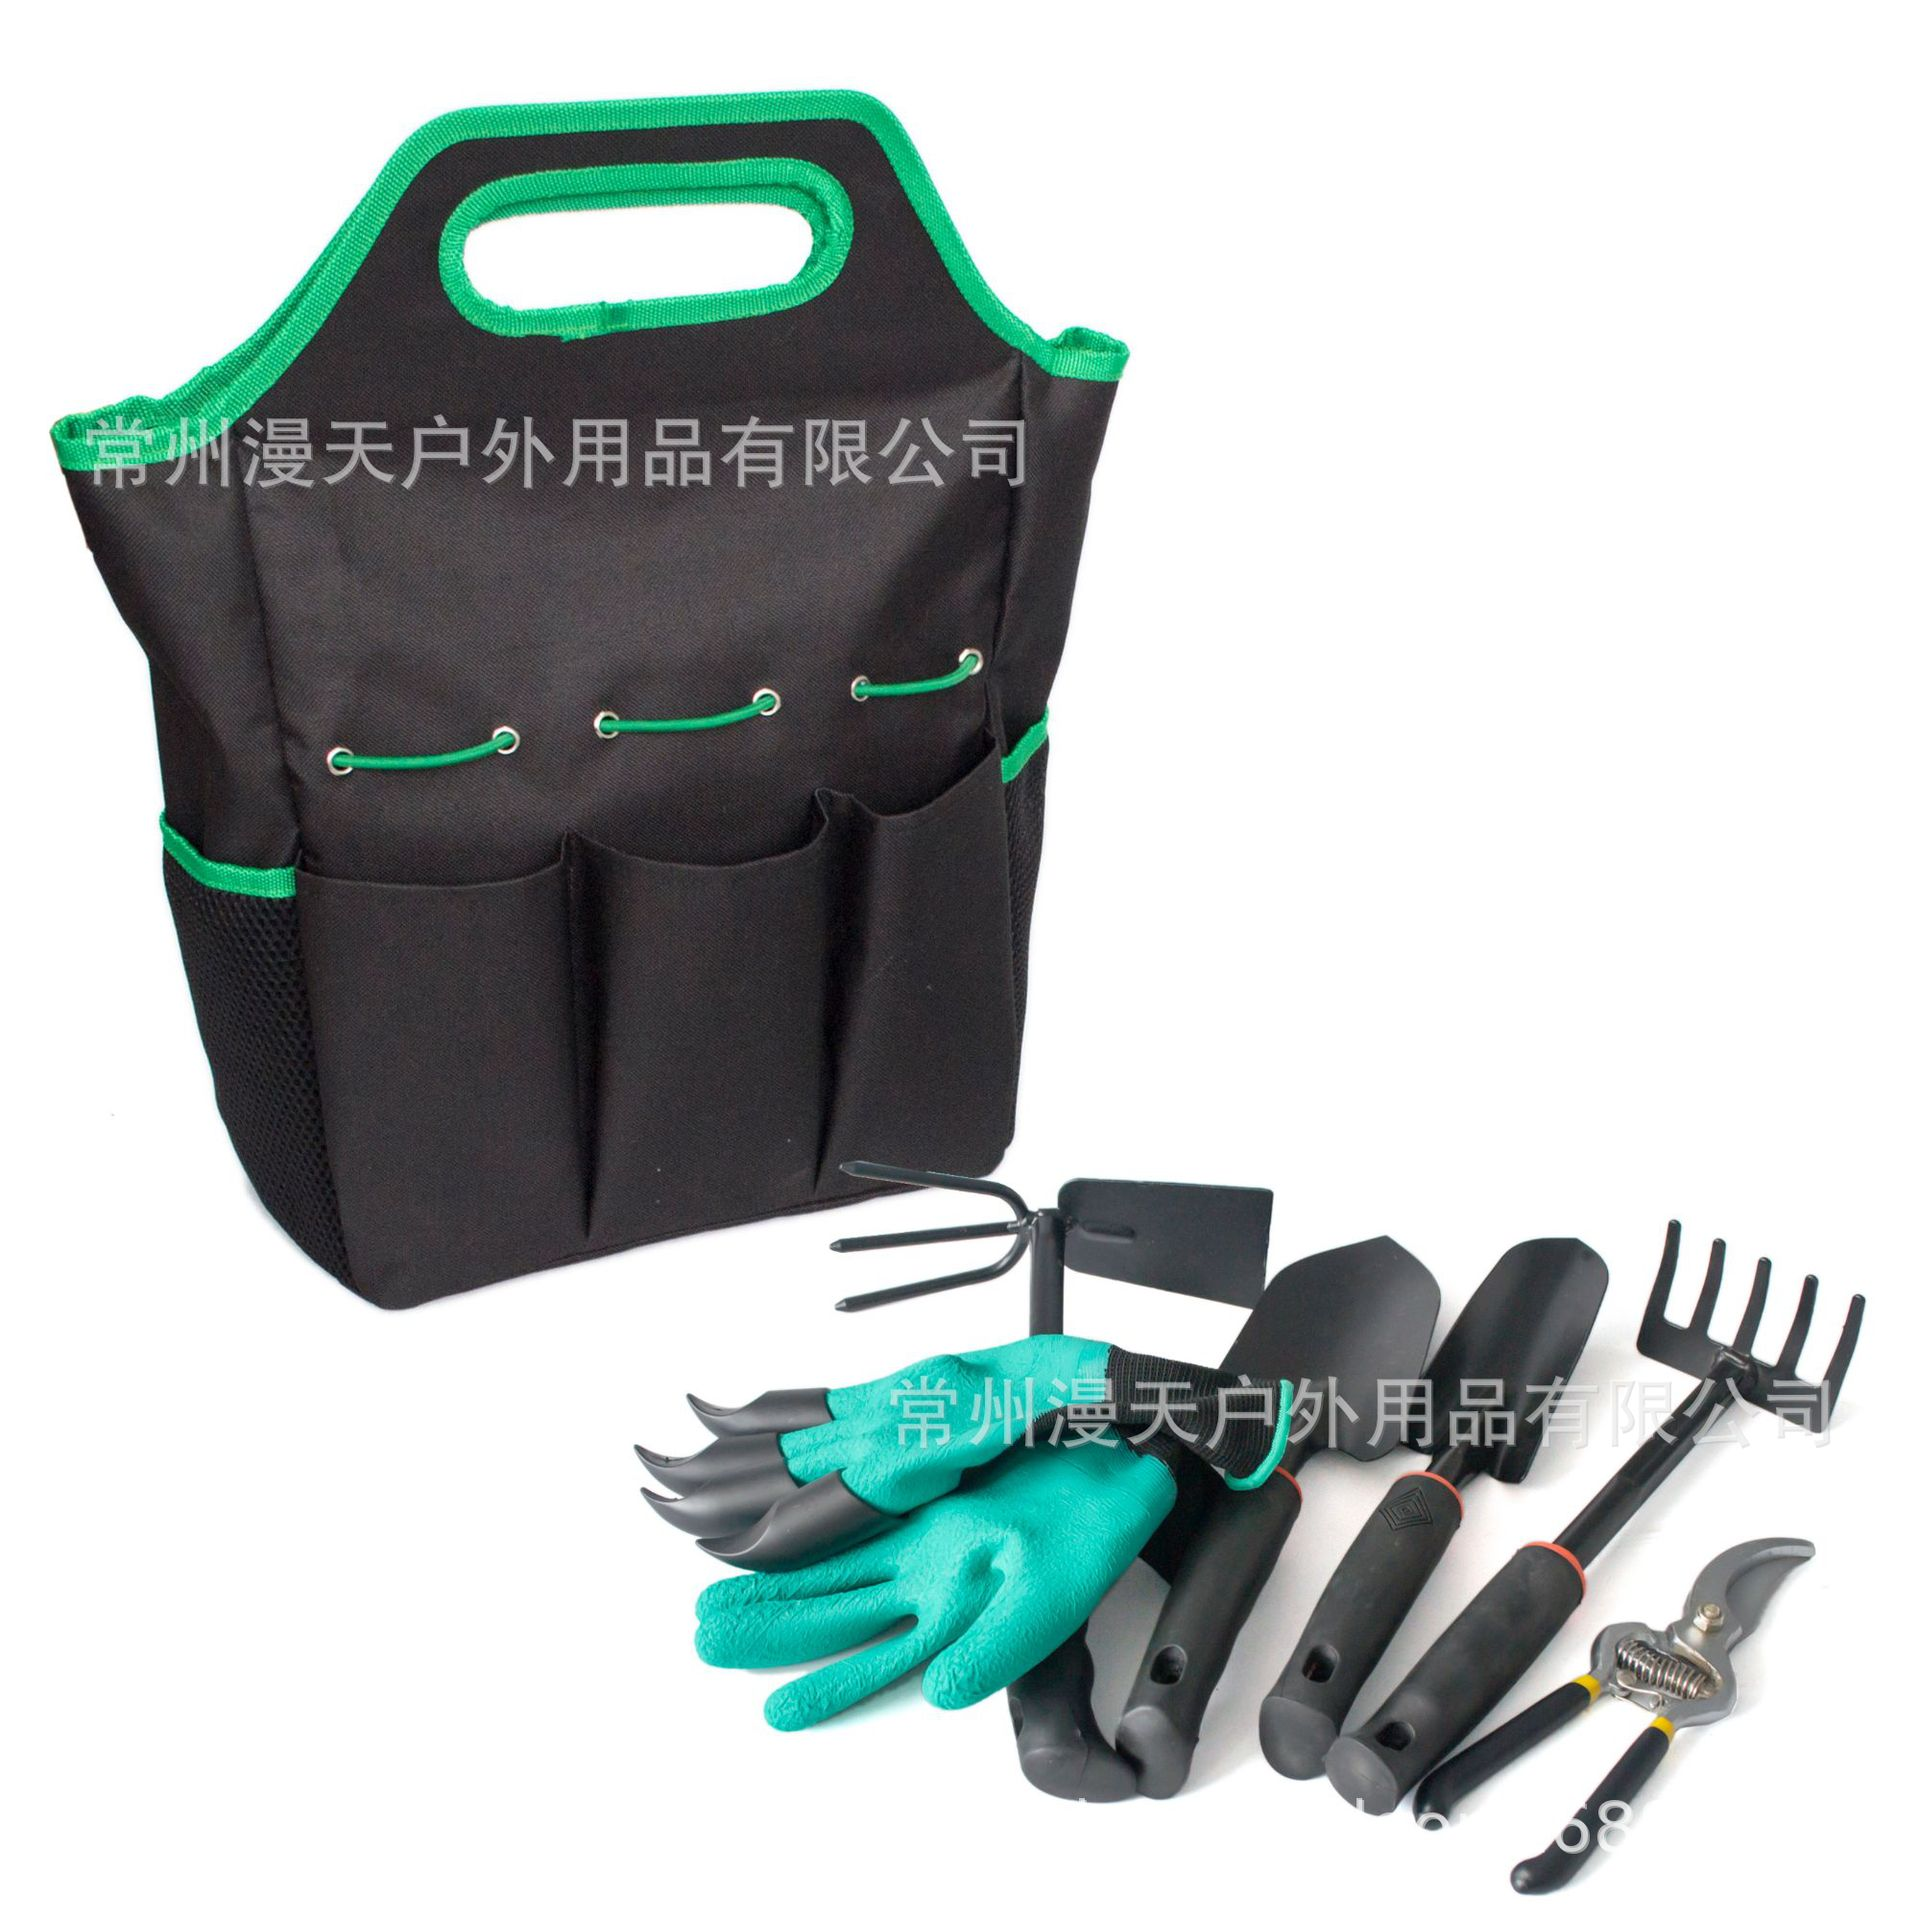 Outdoor Garden Tools Storage Bag 6 Pieces Garden Tool Kit Garden Tools Set